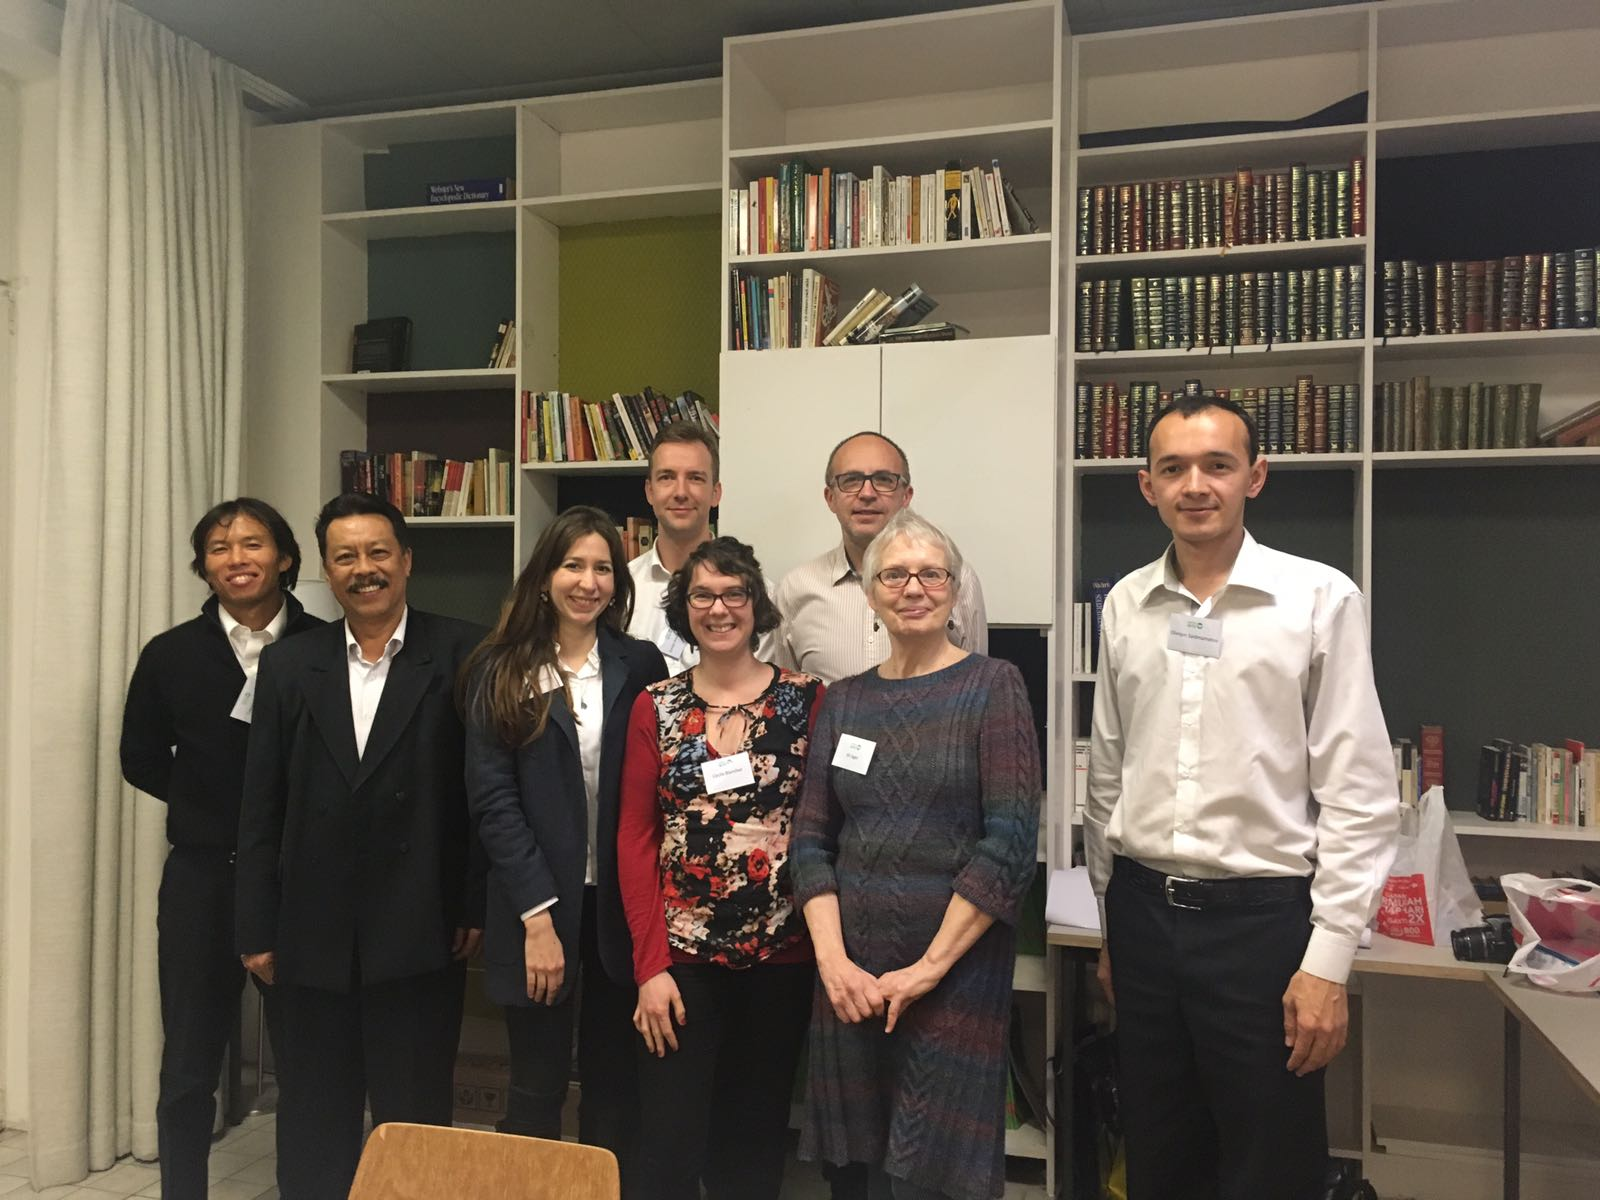 The #energy team working on #WinWinSolutions with @jaeger_jill @TakeshiTakama @OSaidmamatov and others! #GreenWinProject #DialogueWorkshop https://t.co/xKp1RerHIb